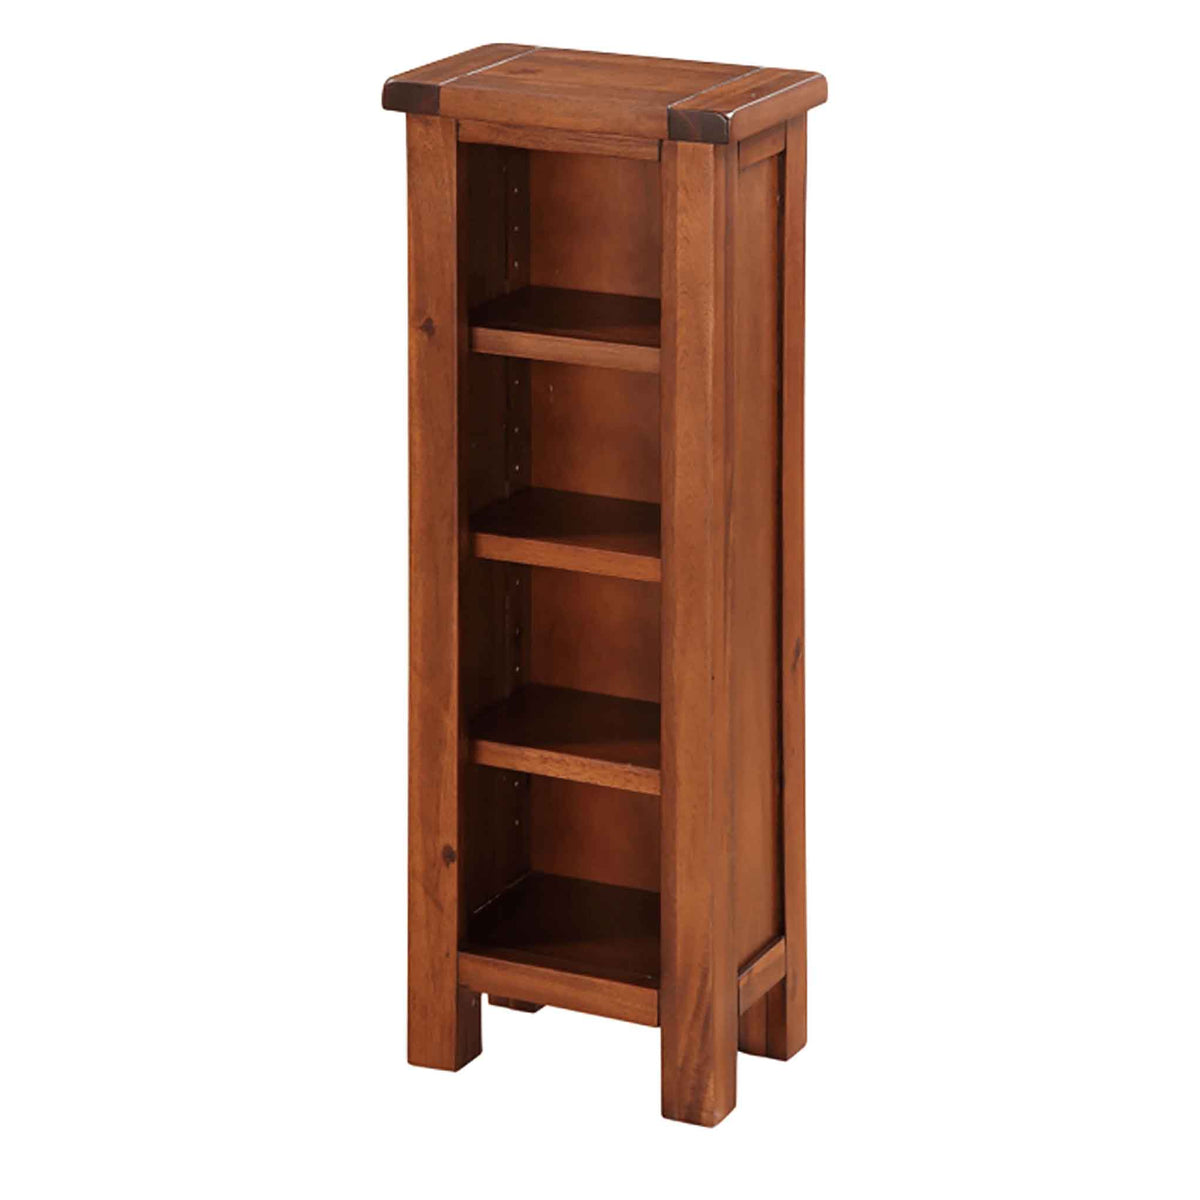 The Prussia Acacia Dark Wood DVD or CD Storage Unit from Roseland Furniture